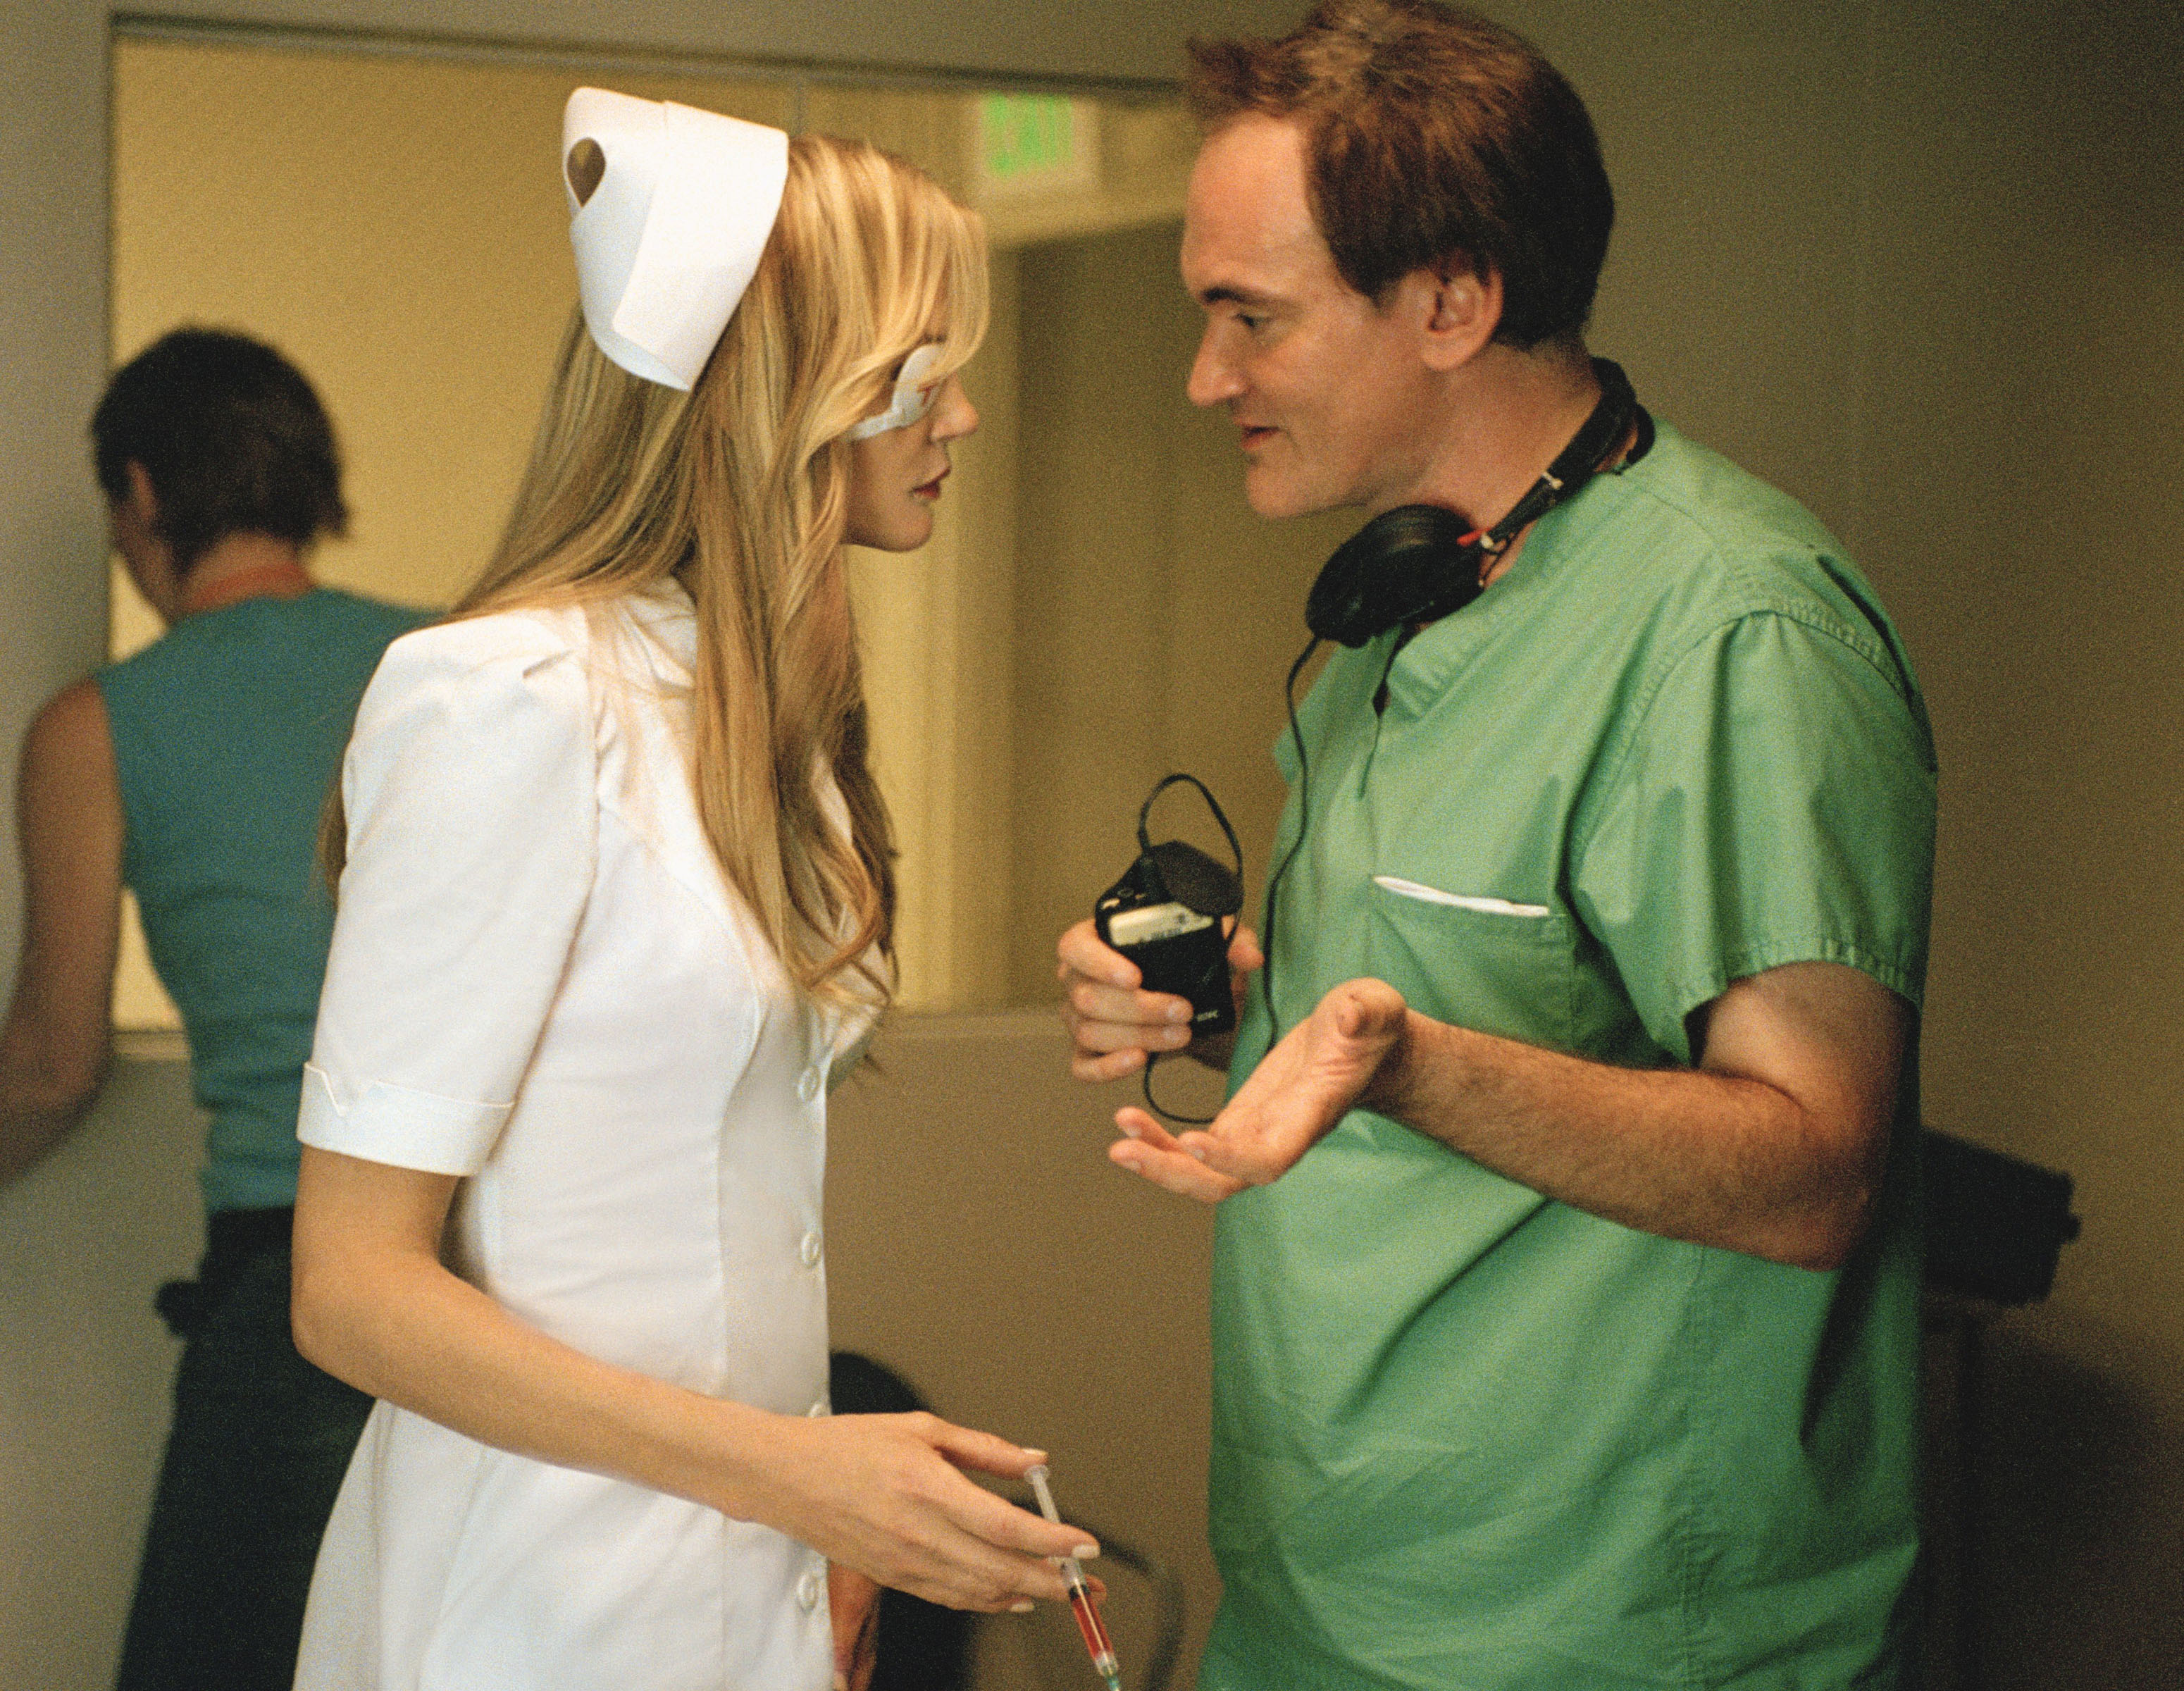 Quentin Tarantino Takes a Radical Career Turn with Manson